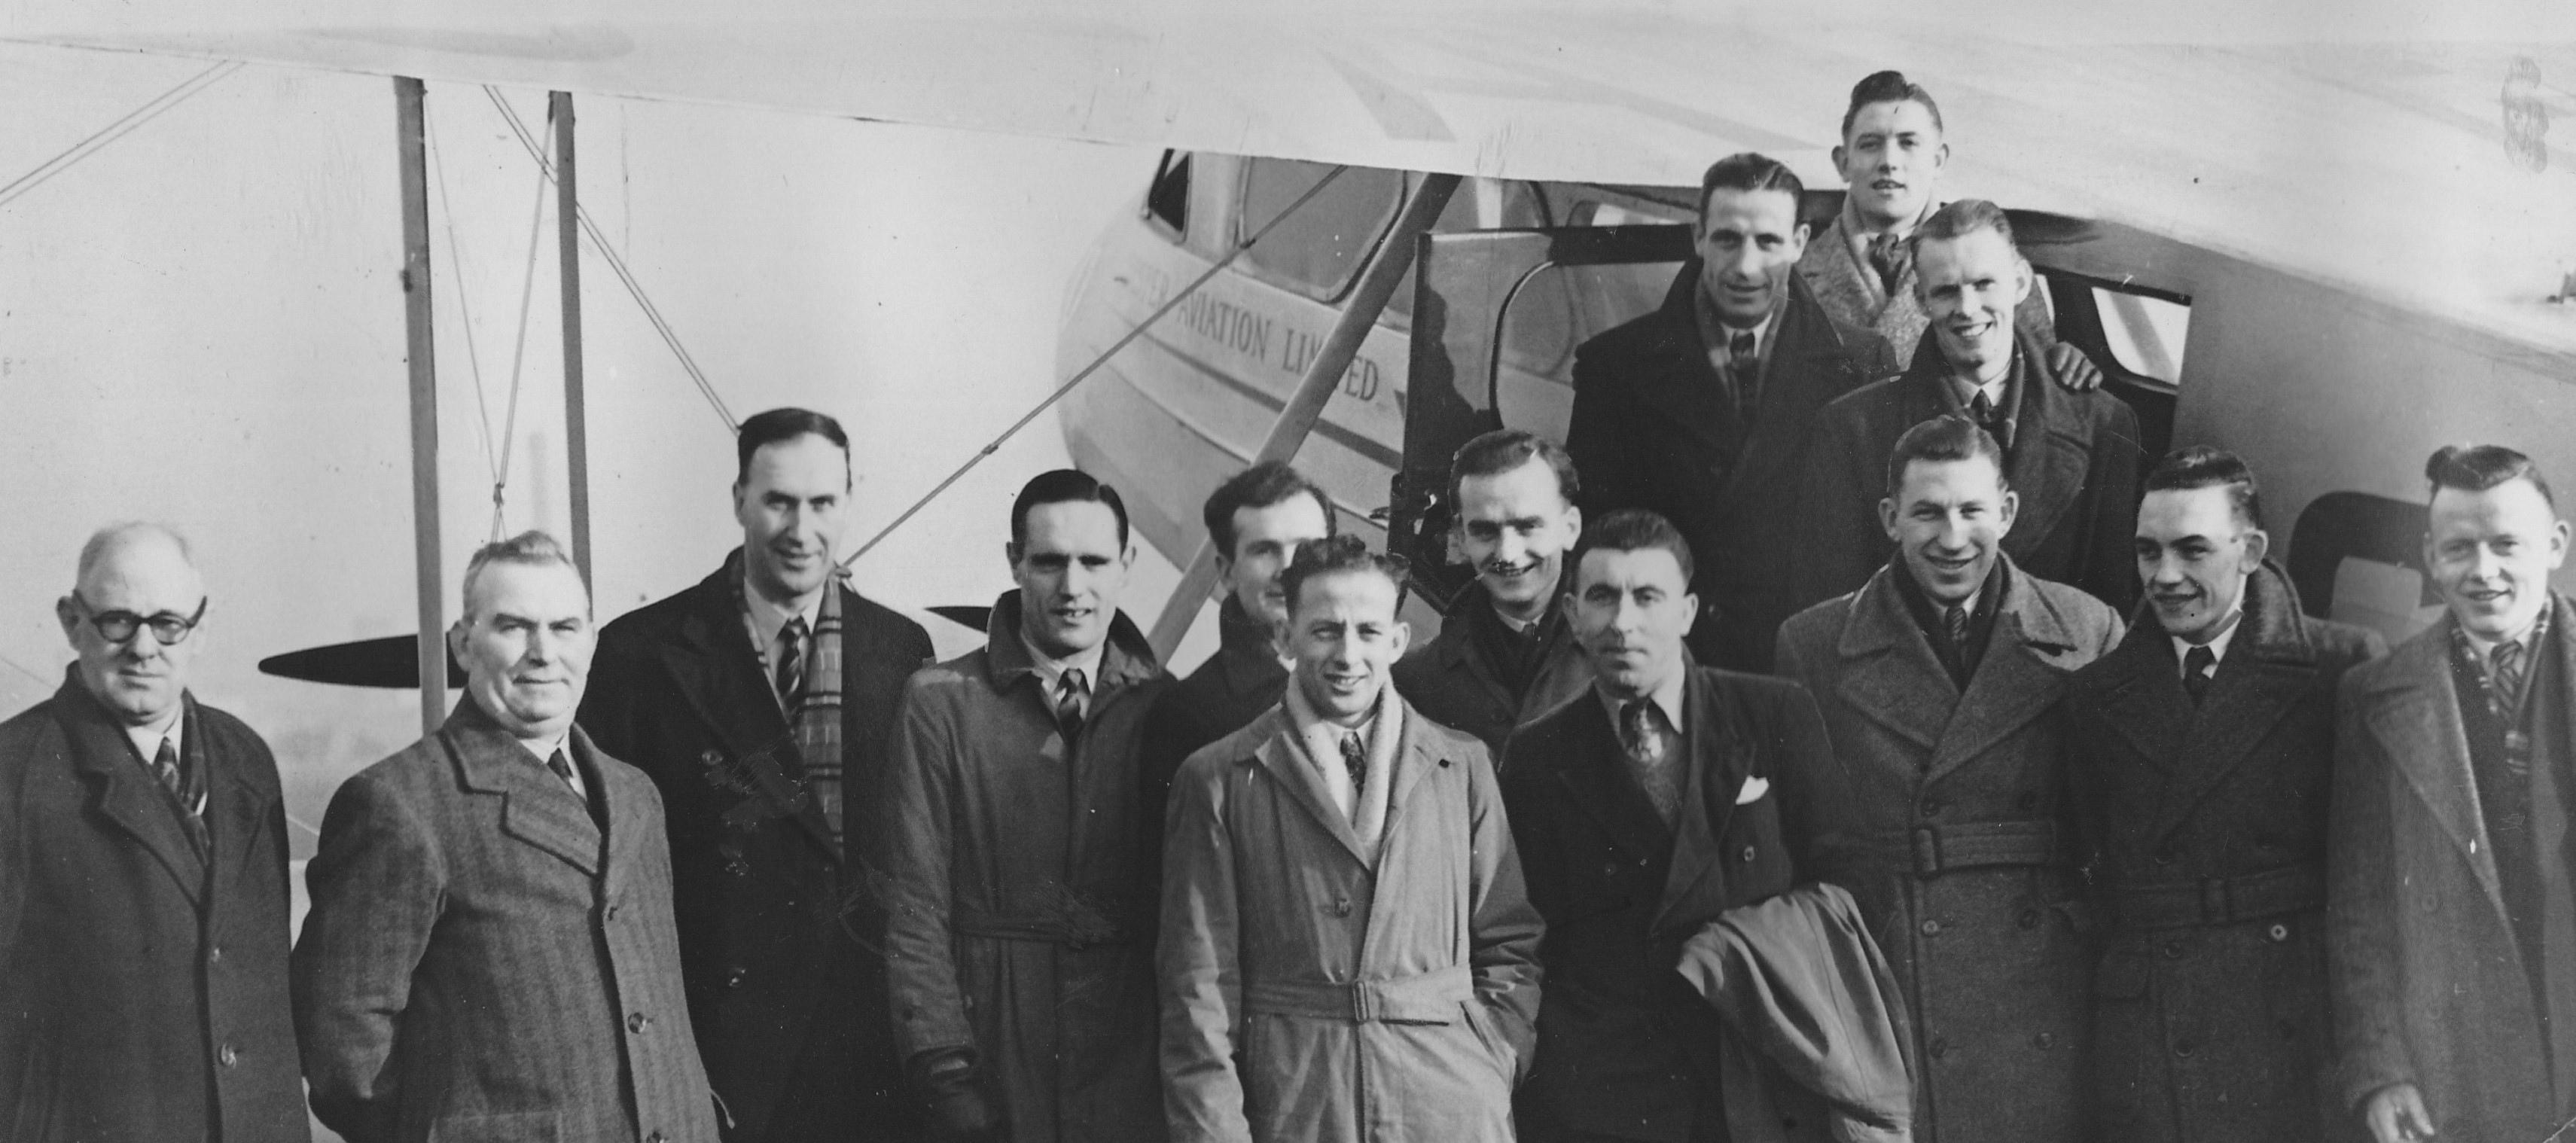 Glenavon's Historic Trip by Air to Aberdeen